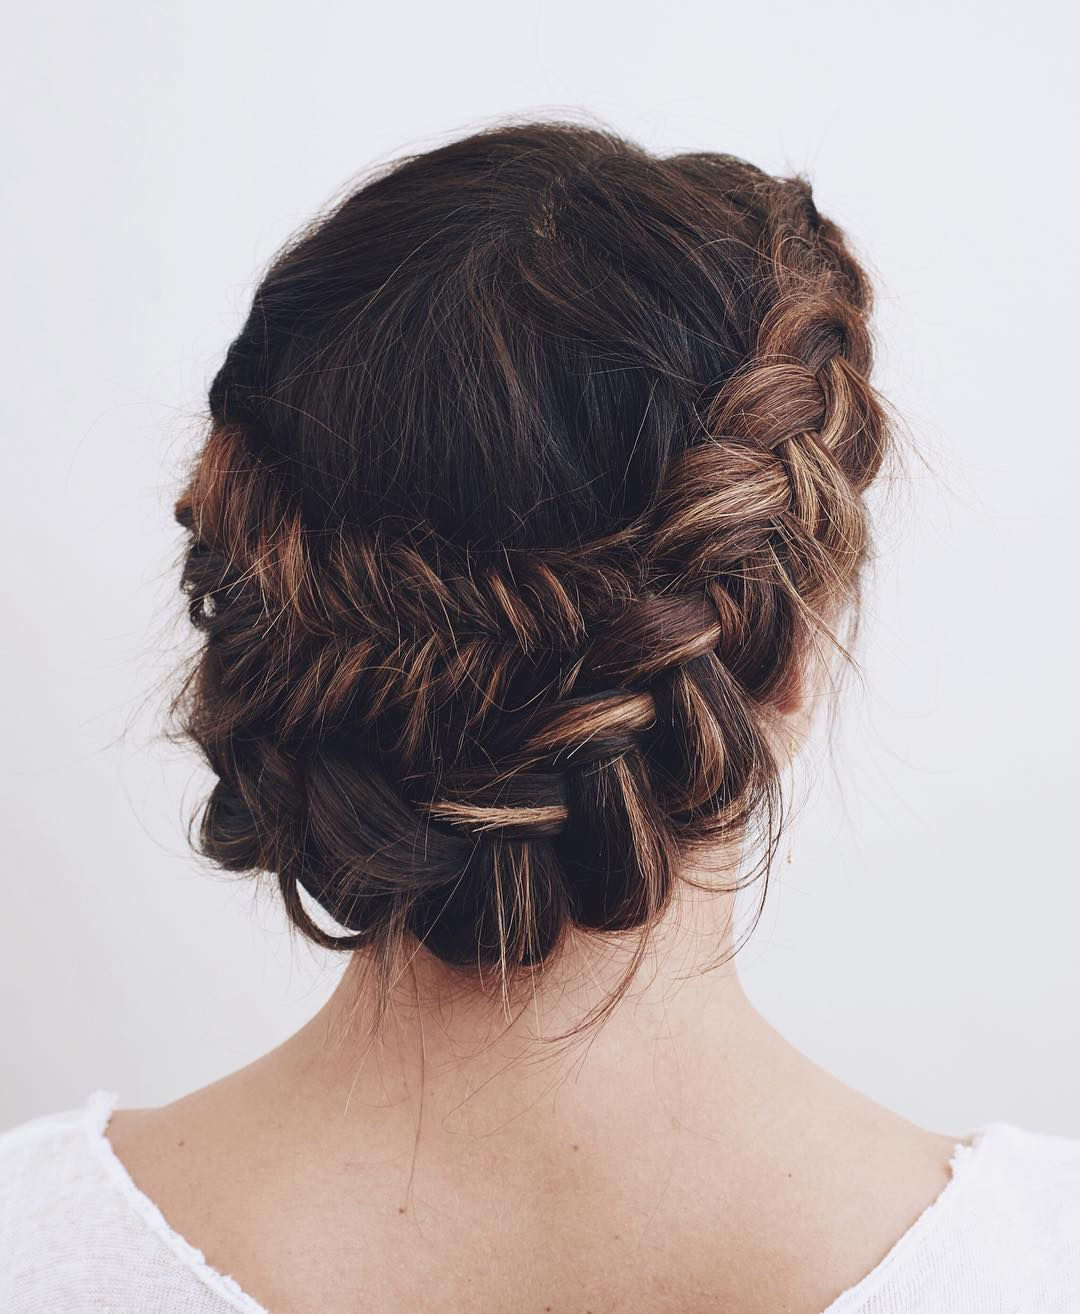 When you can't decide which braid? Fishtail braids Dutch crown braids